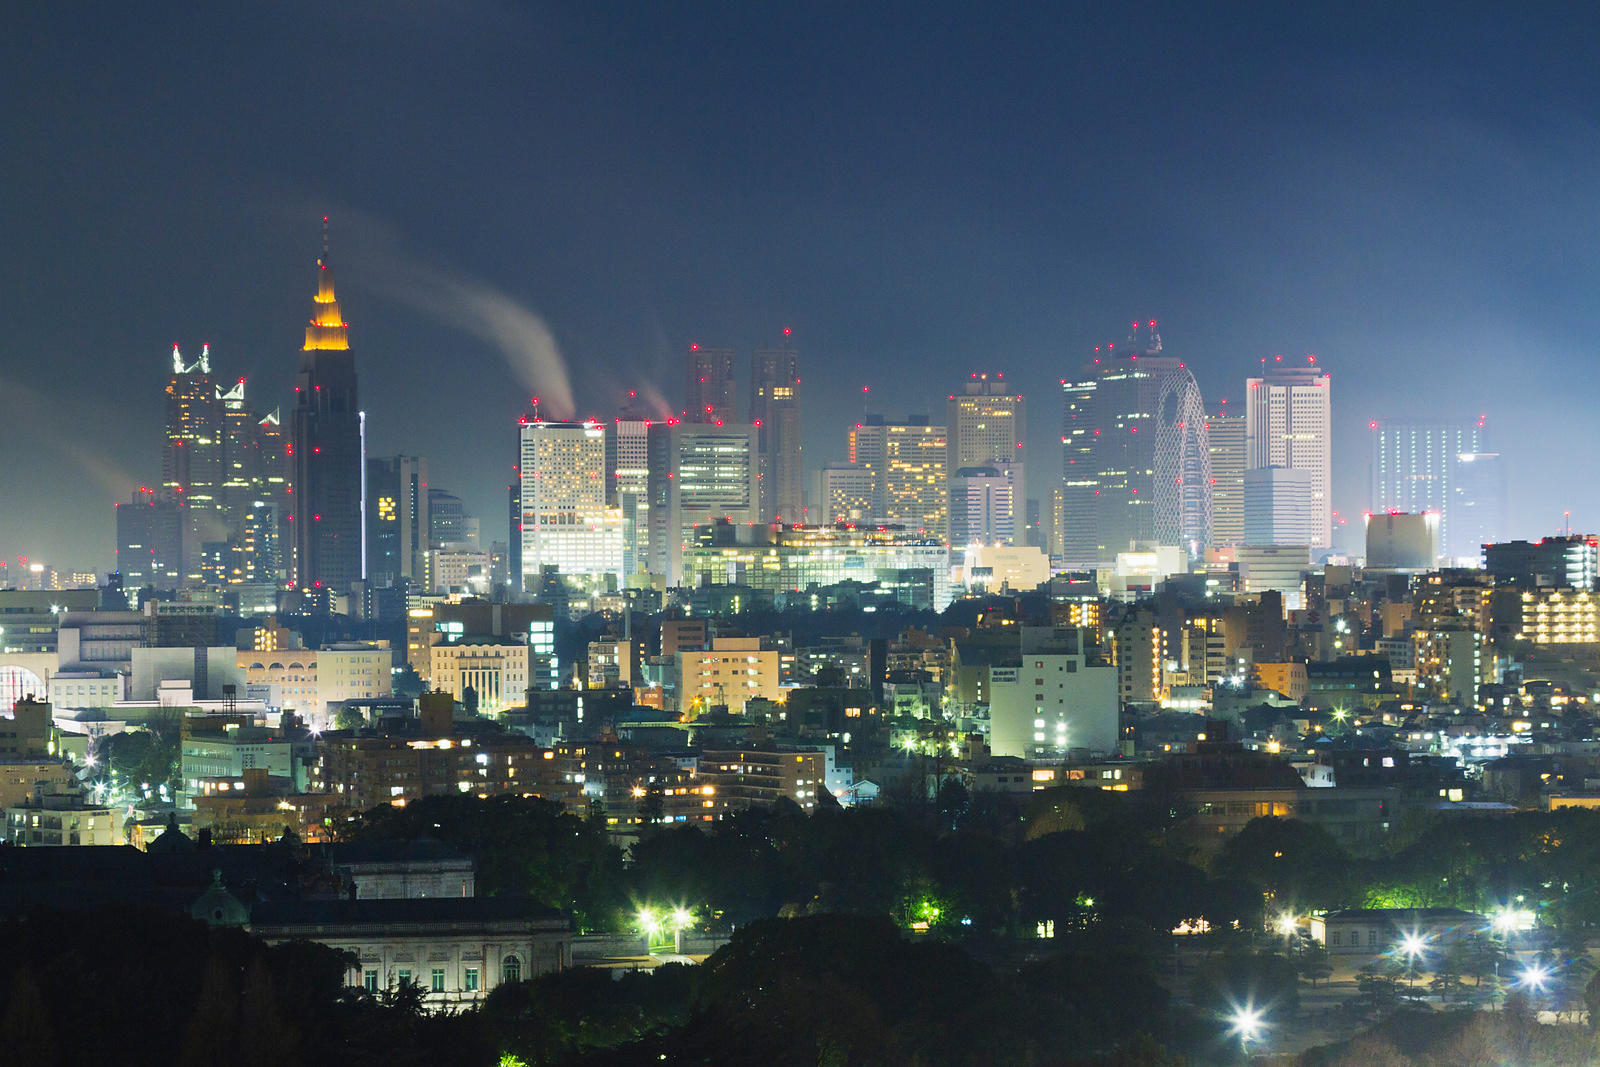 Shinjuku Skyline at night